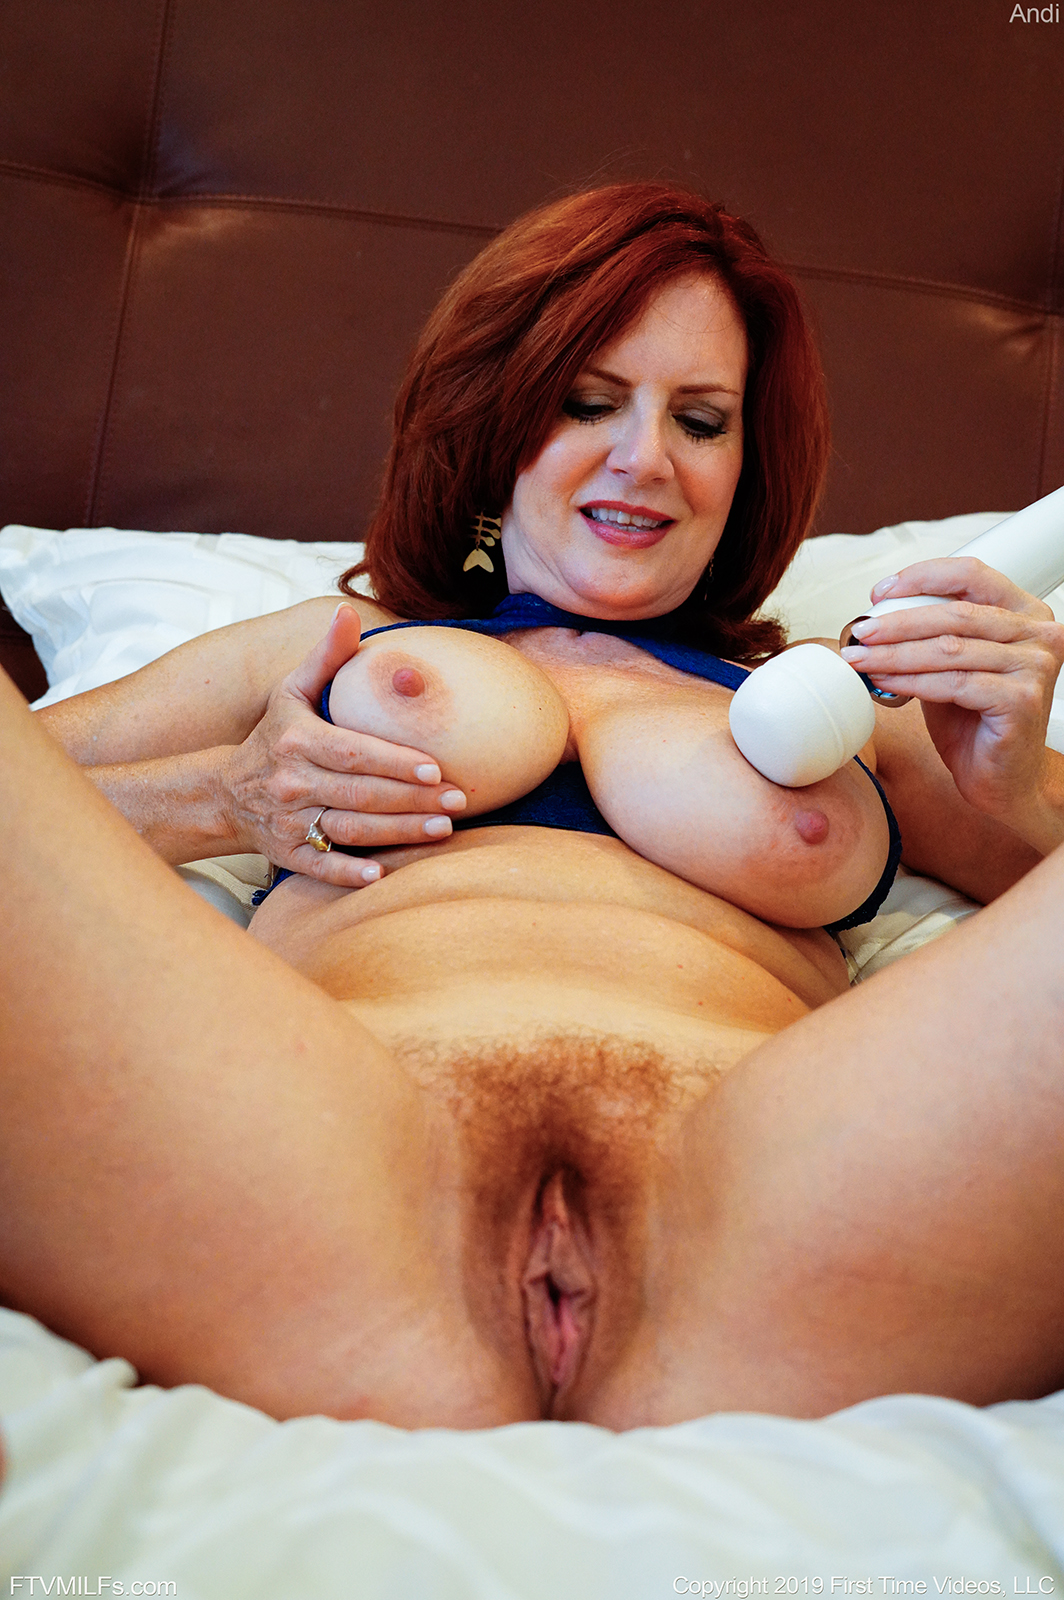 Redhead and busty Andi James